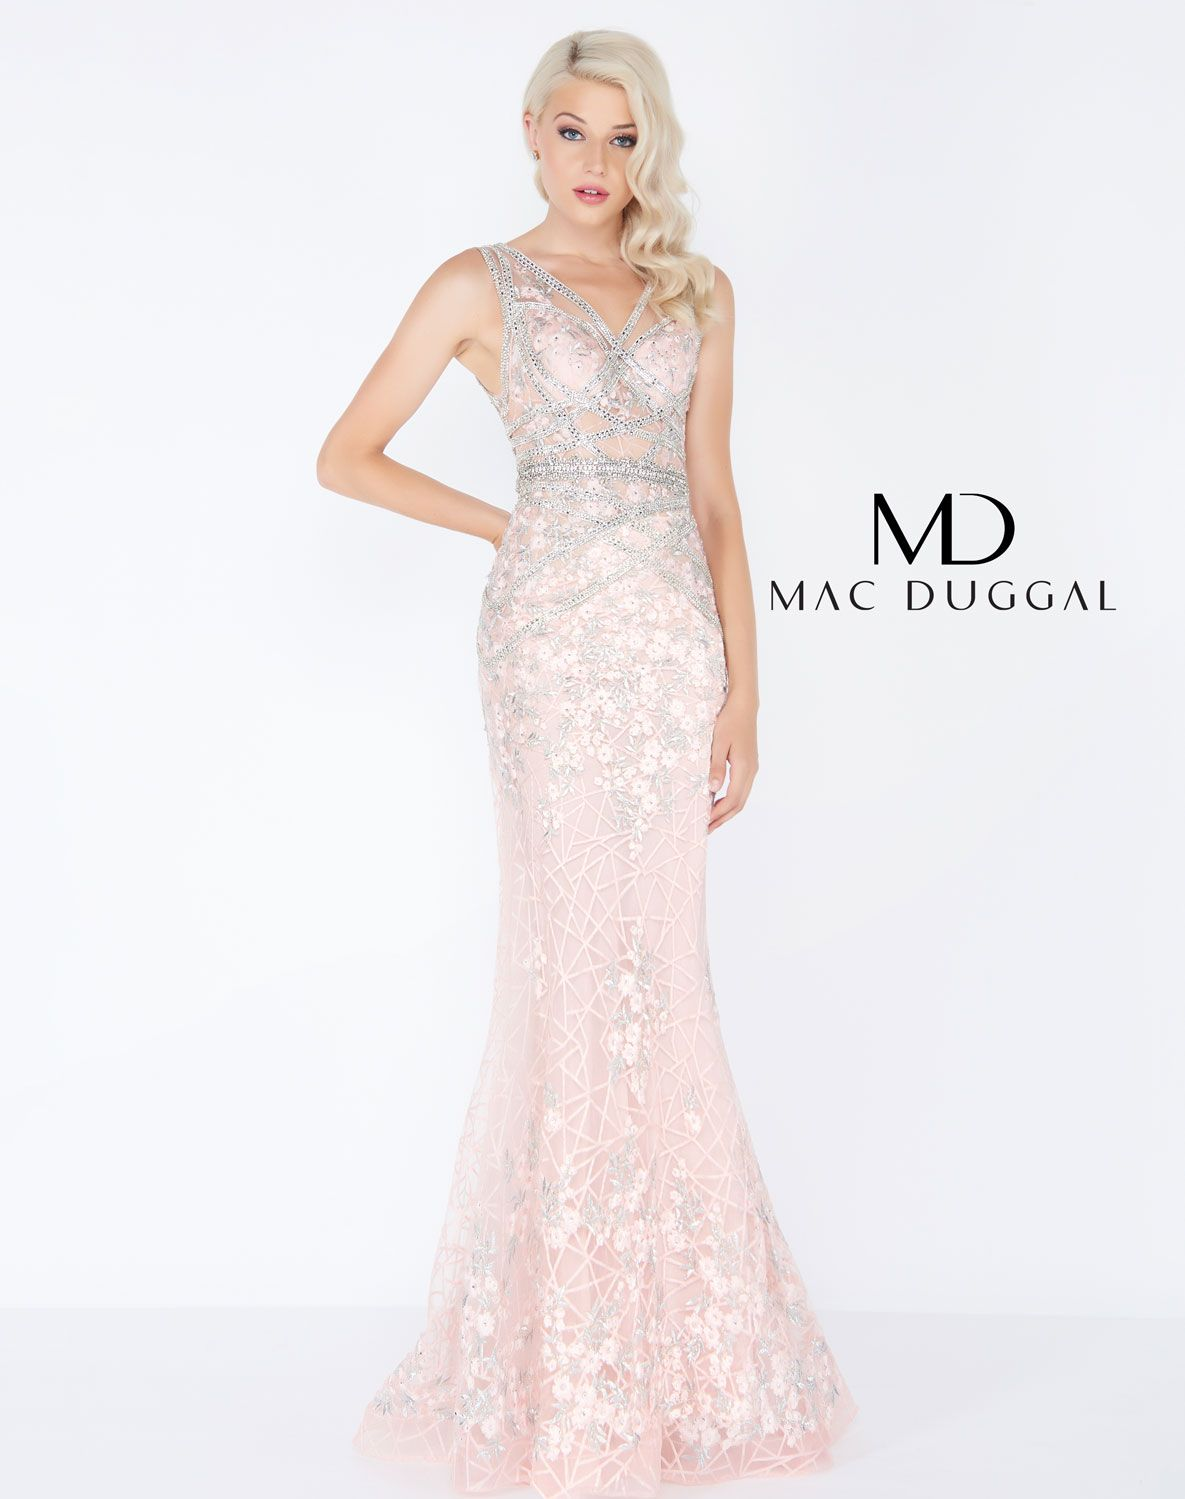 0b3ce170510 Form fitting blush prom dress with criss-cross beading and illusion bodice.  This elegant lace gown is accented with floral embroidery that gives way to  a ...